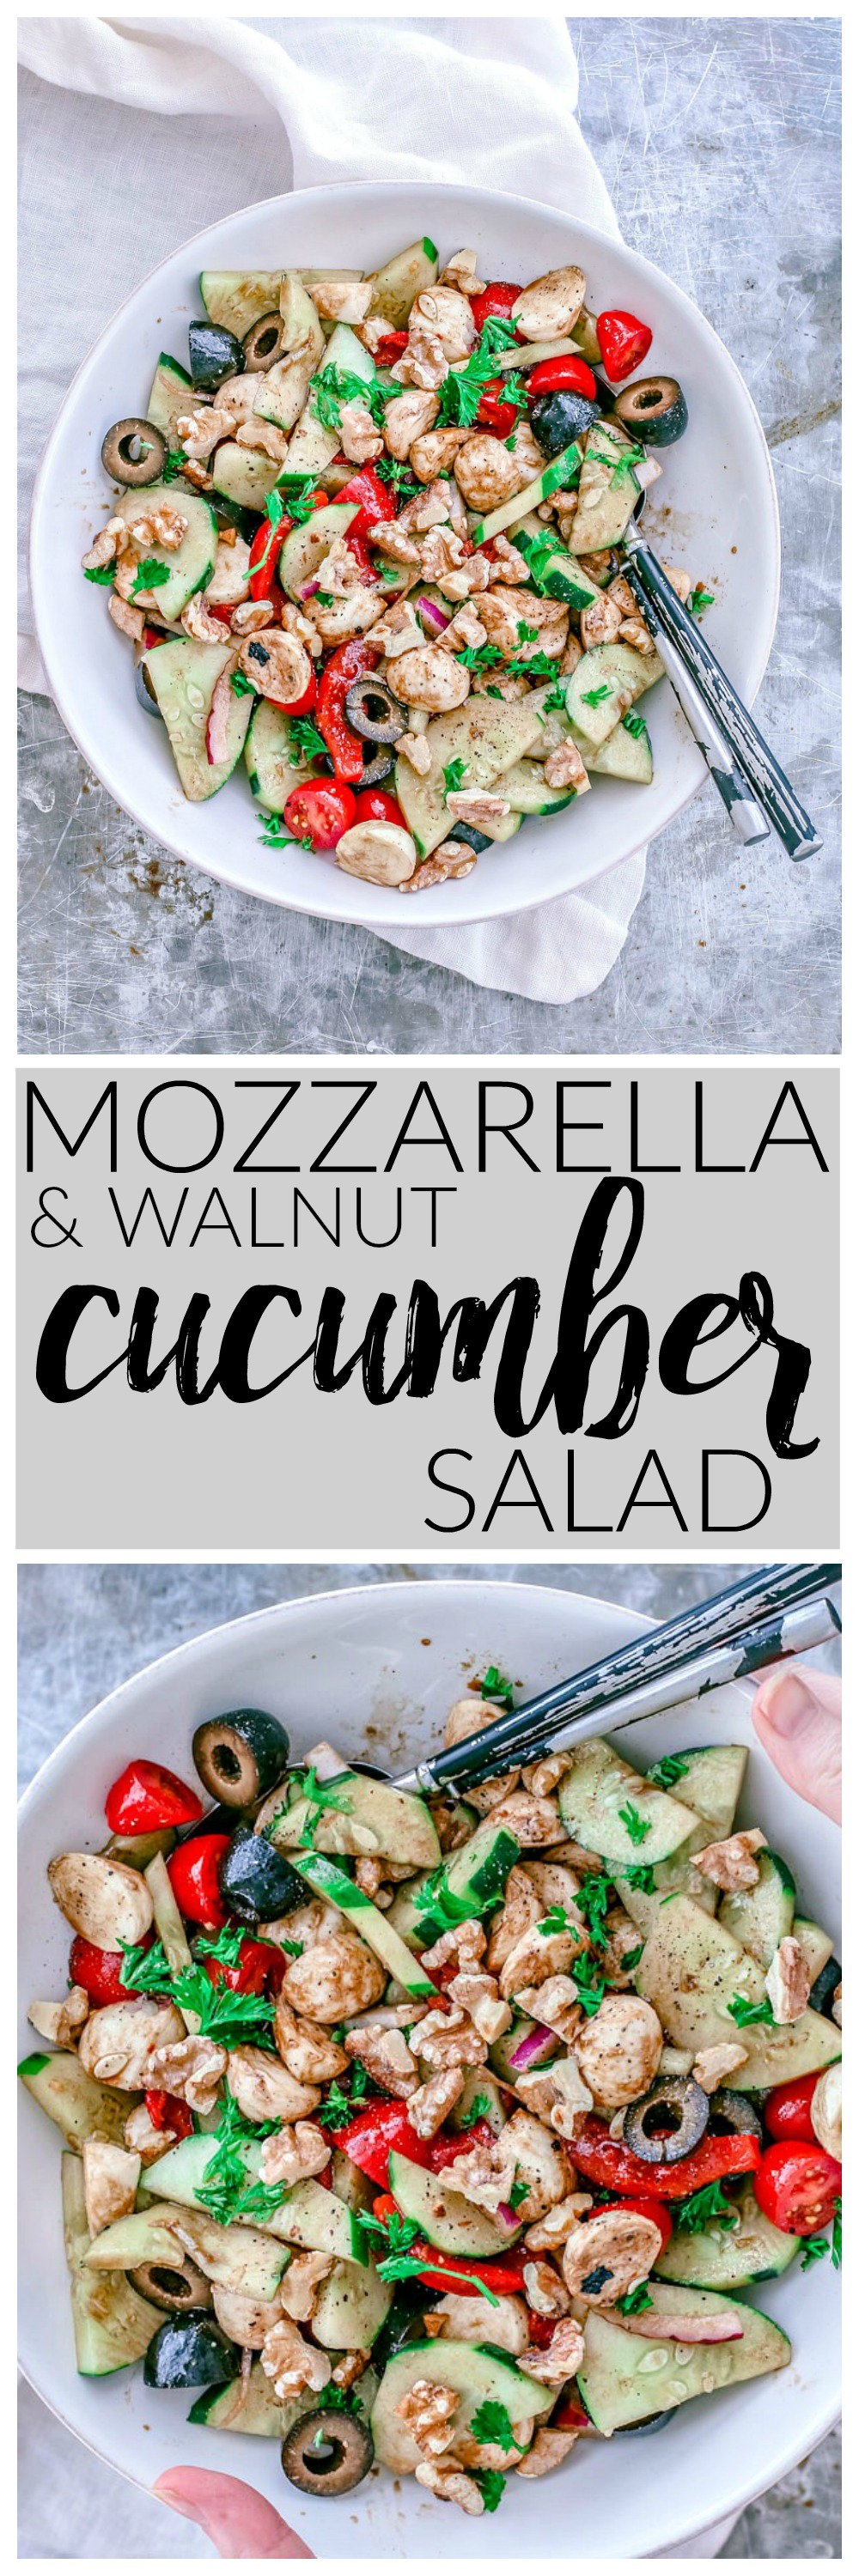 Crunchy Cucumber and Mozzarella Salad With Toasted Walnuts | Killing Thyme